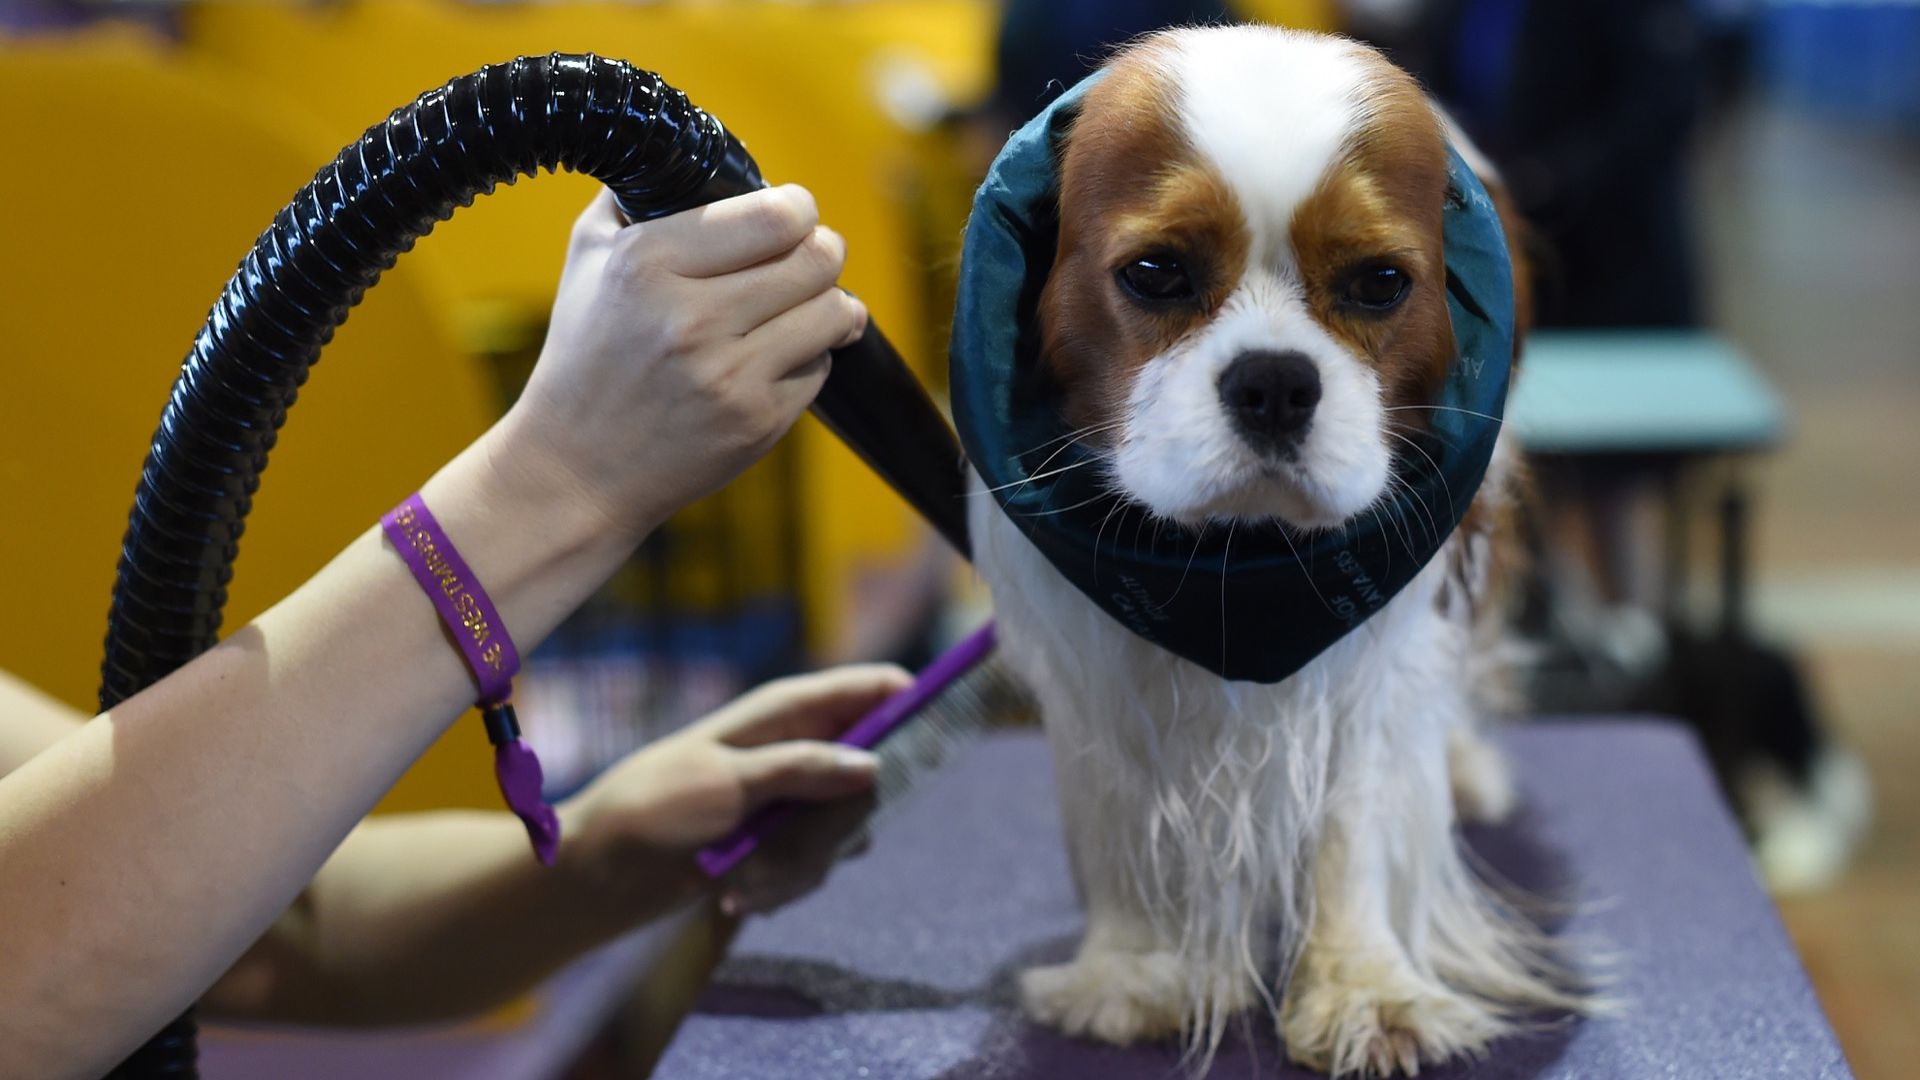 A Cavalier King Charles Spaniel getting groomed